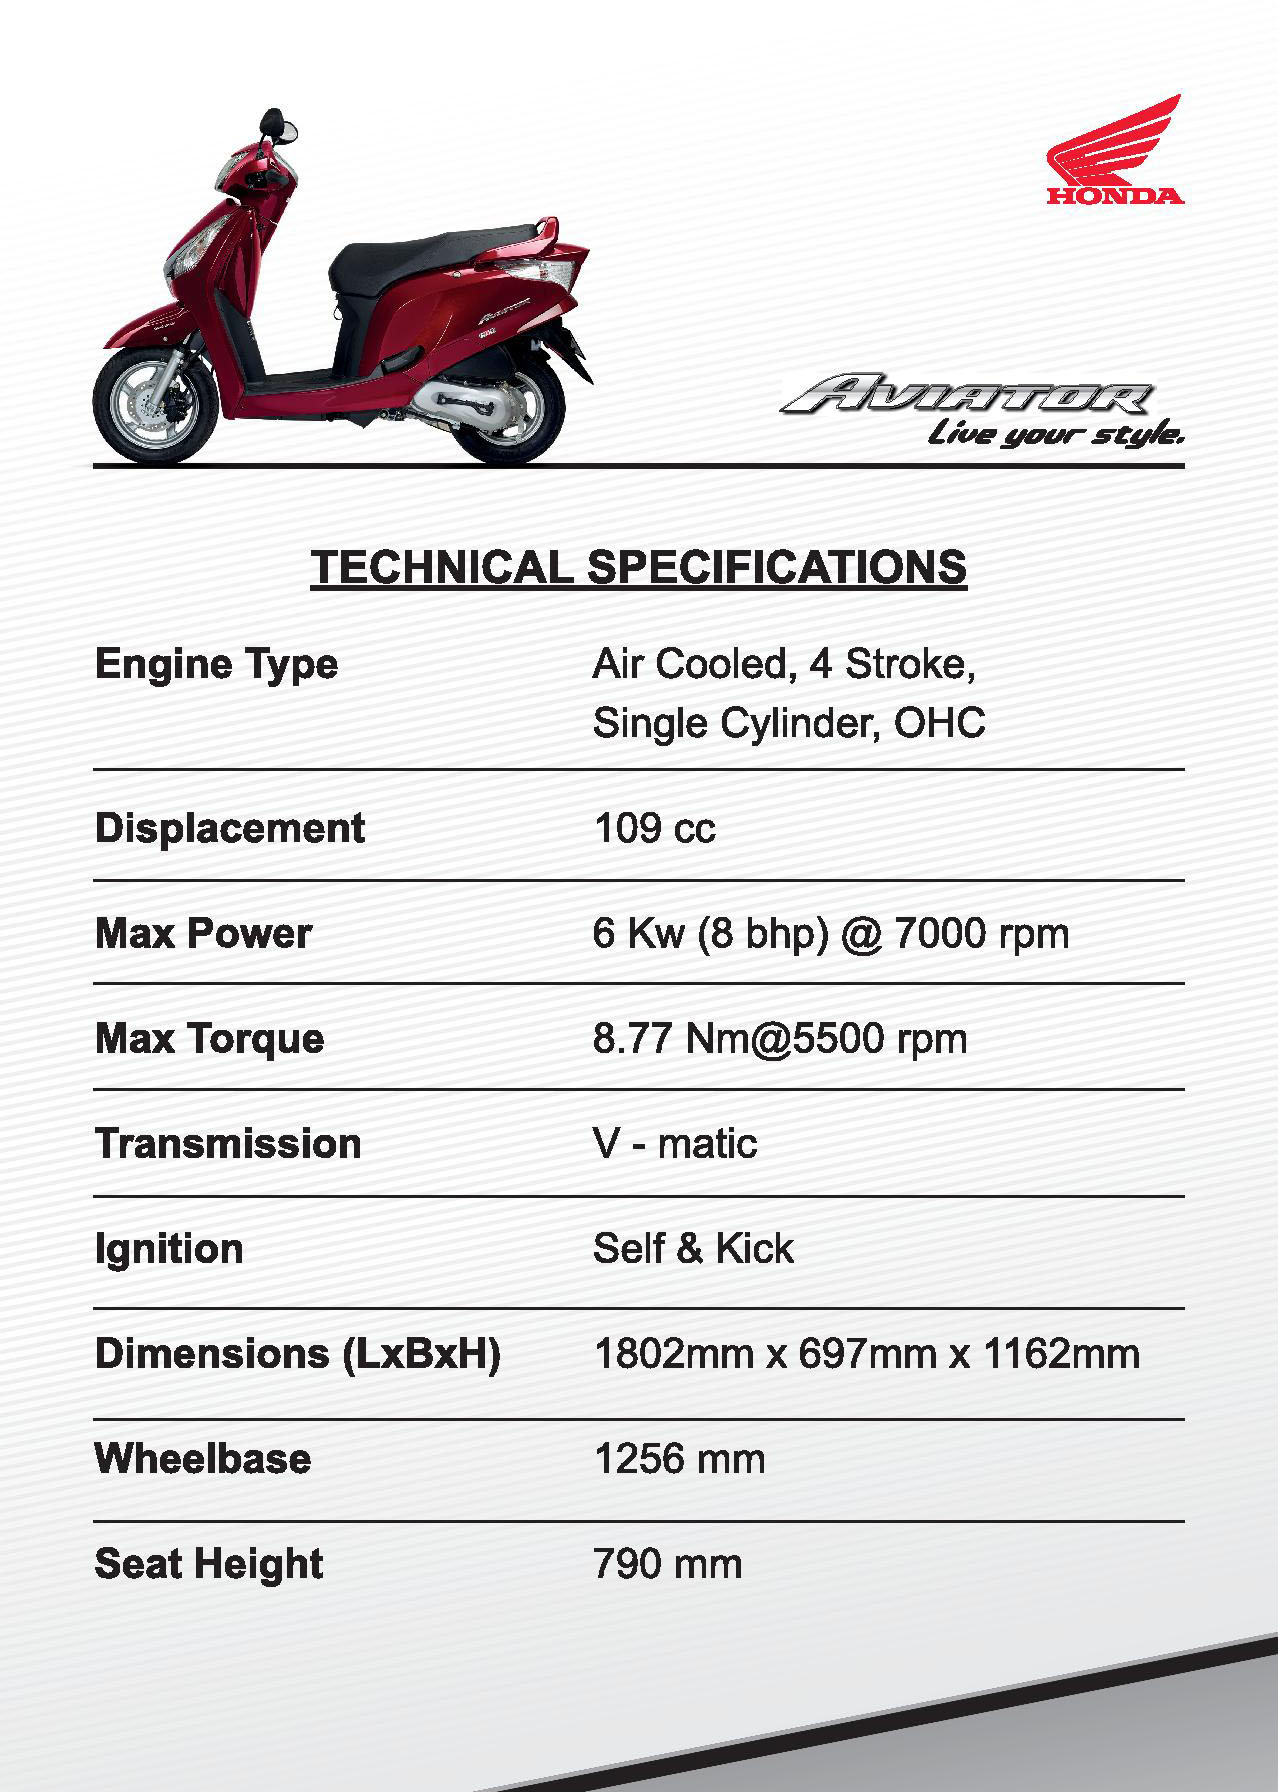 Activa Specifications